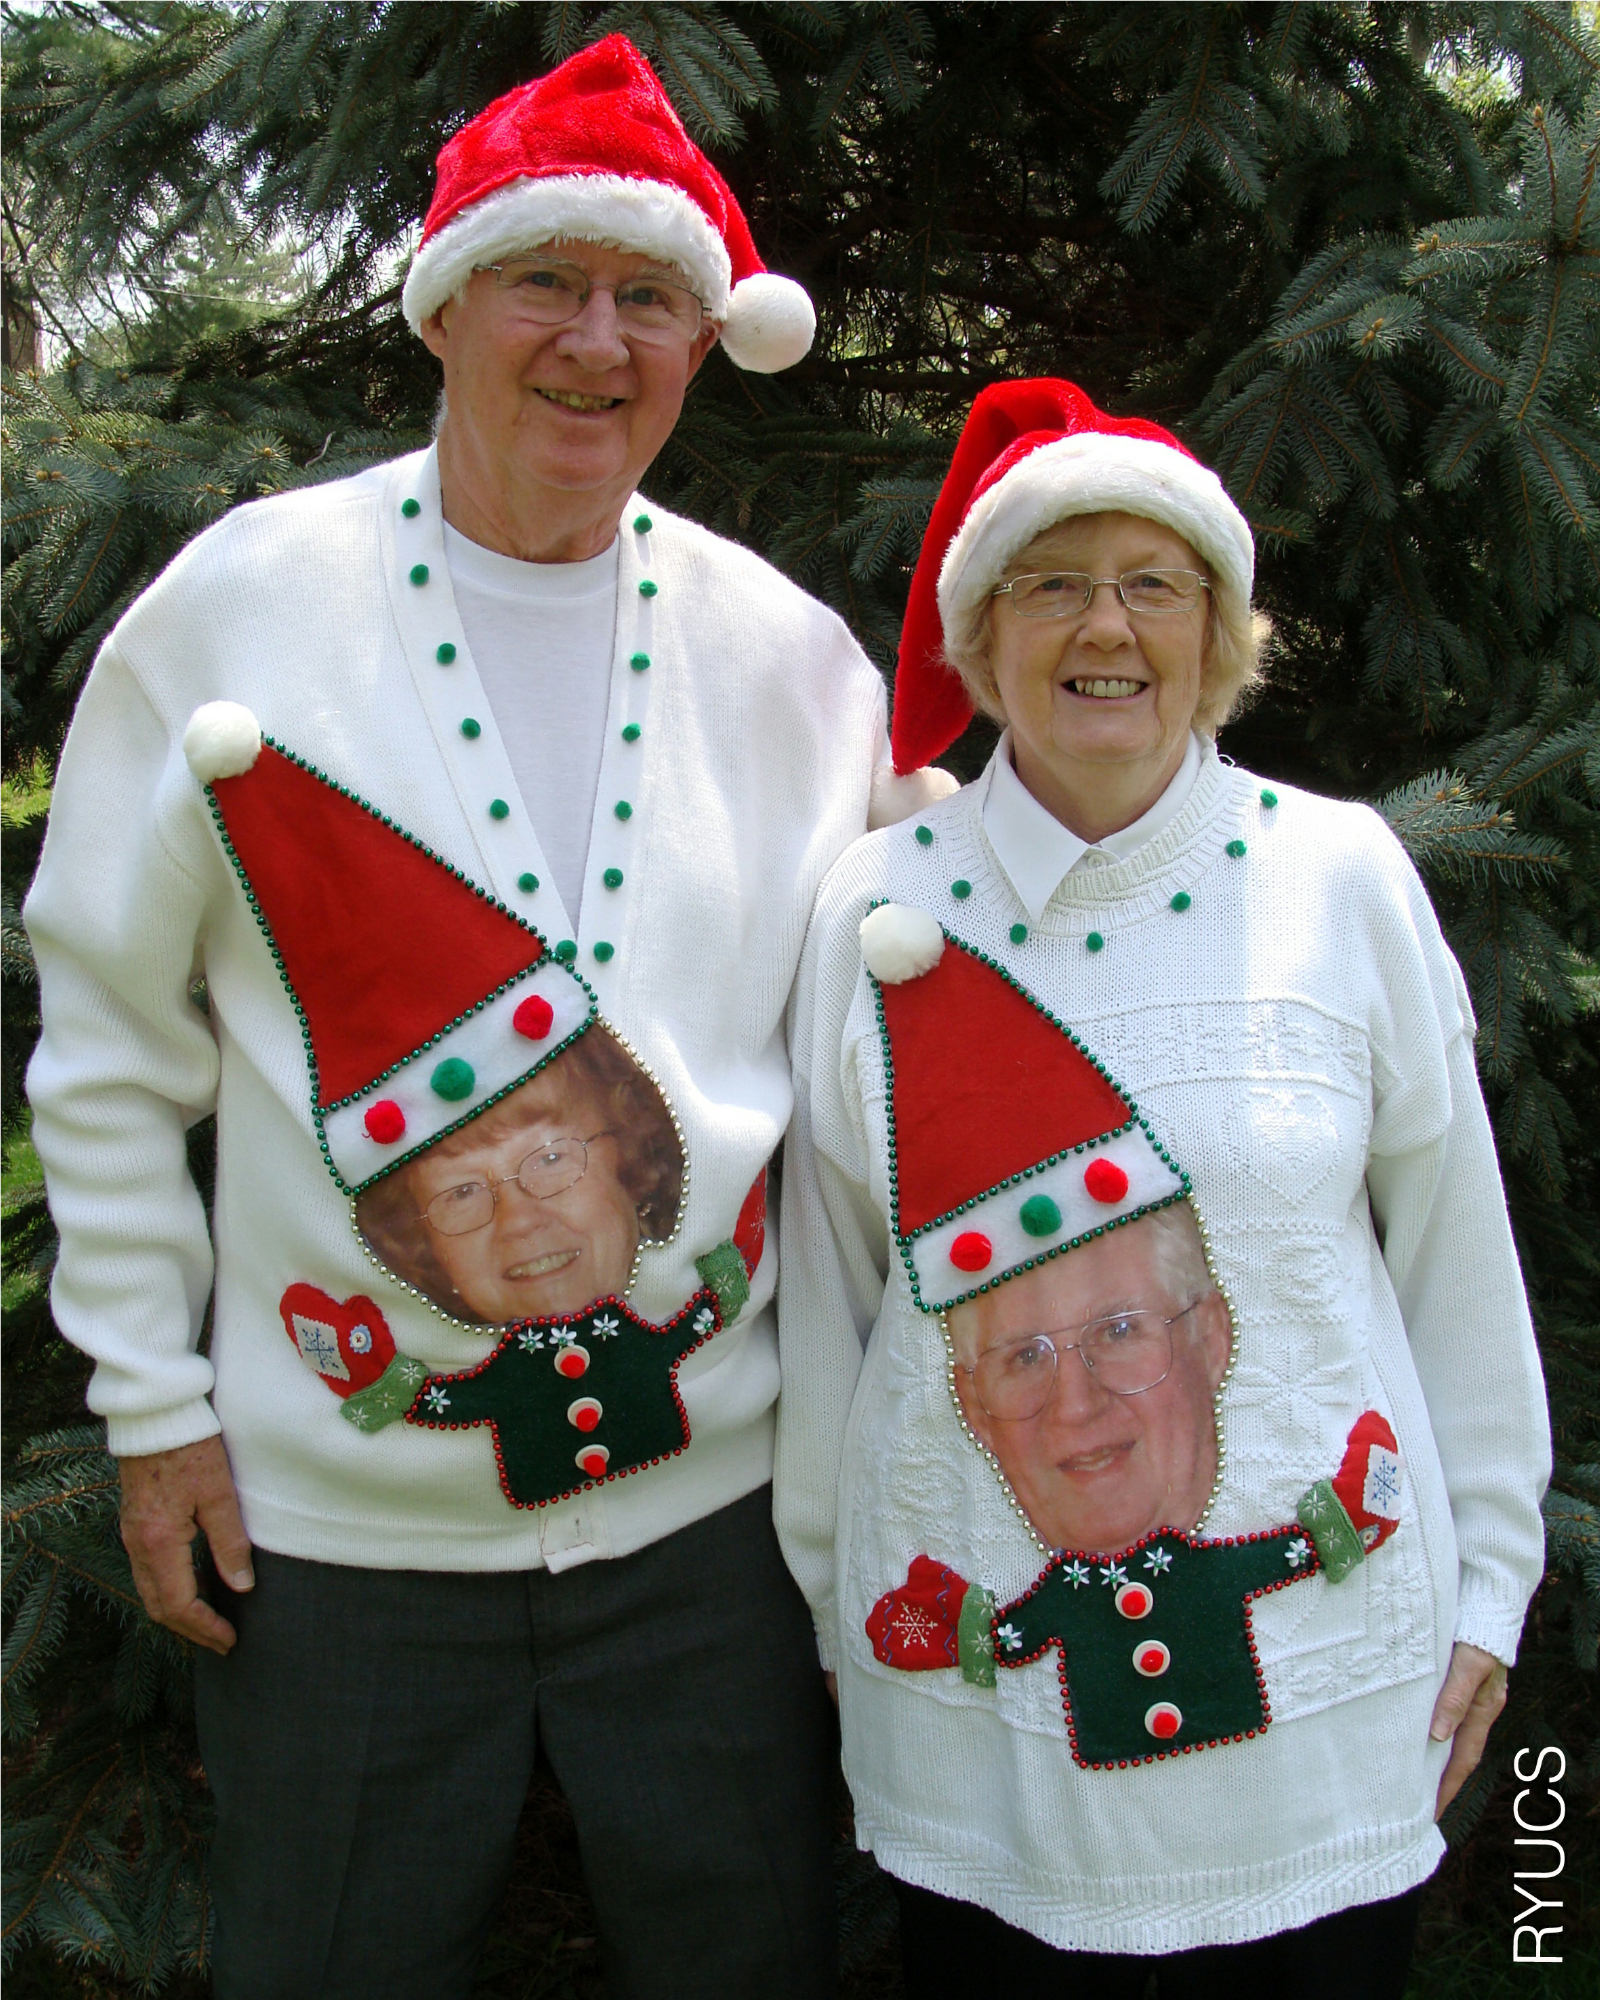 When you sweater together, you stay together. If you're looking for the perfect outfit to match your Boo or BFF, we've got you covered with premium quality and downright hilarious matching ugly Christmas sweaters.